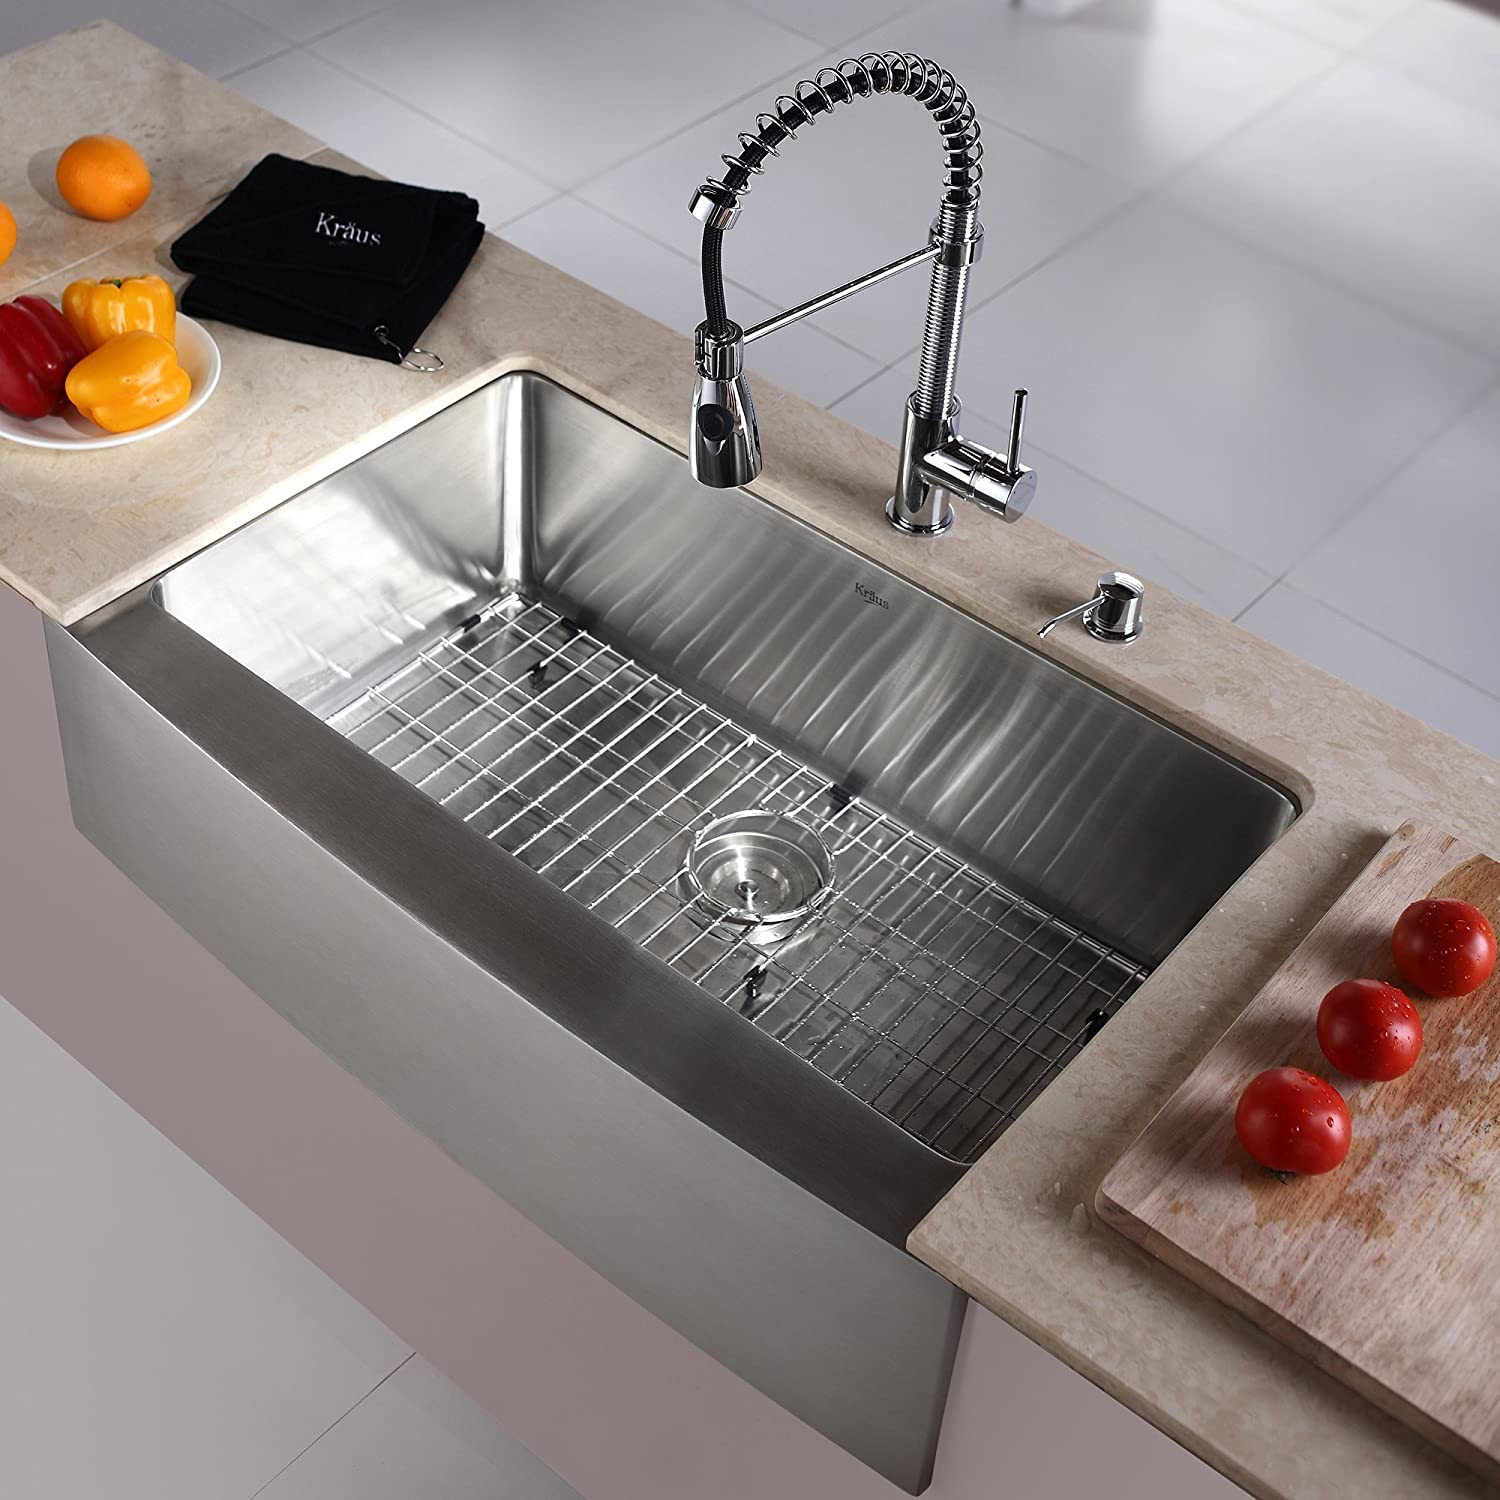 Kraus KHF200-33-KPF1612-KSD30CH 33 inch Farmhouse Single Bowl Stainless Steel Kitchen Sink with Chrome Kitchen Faucet and Soap Dispenser